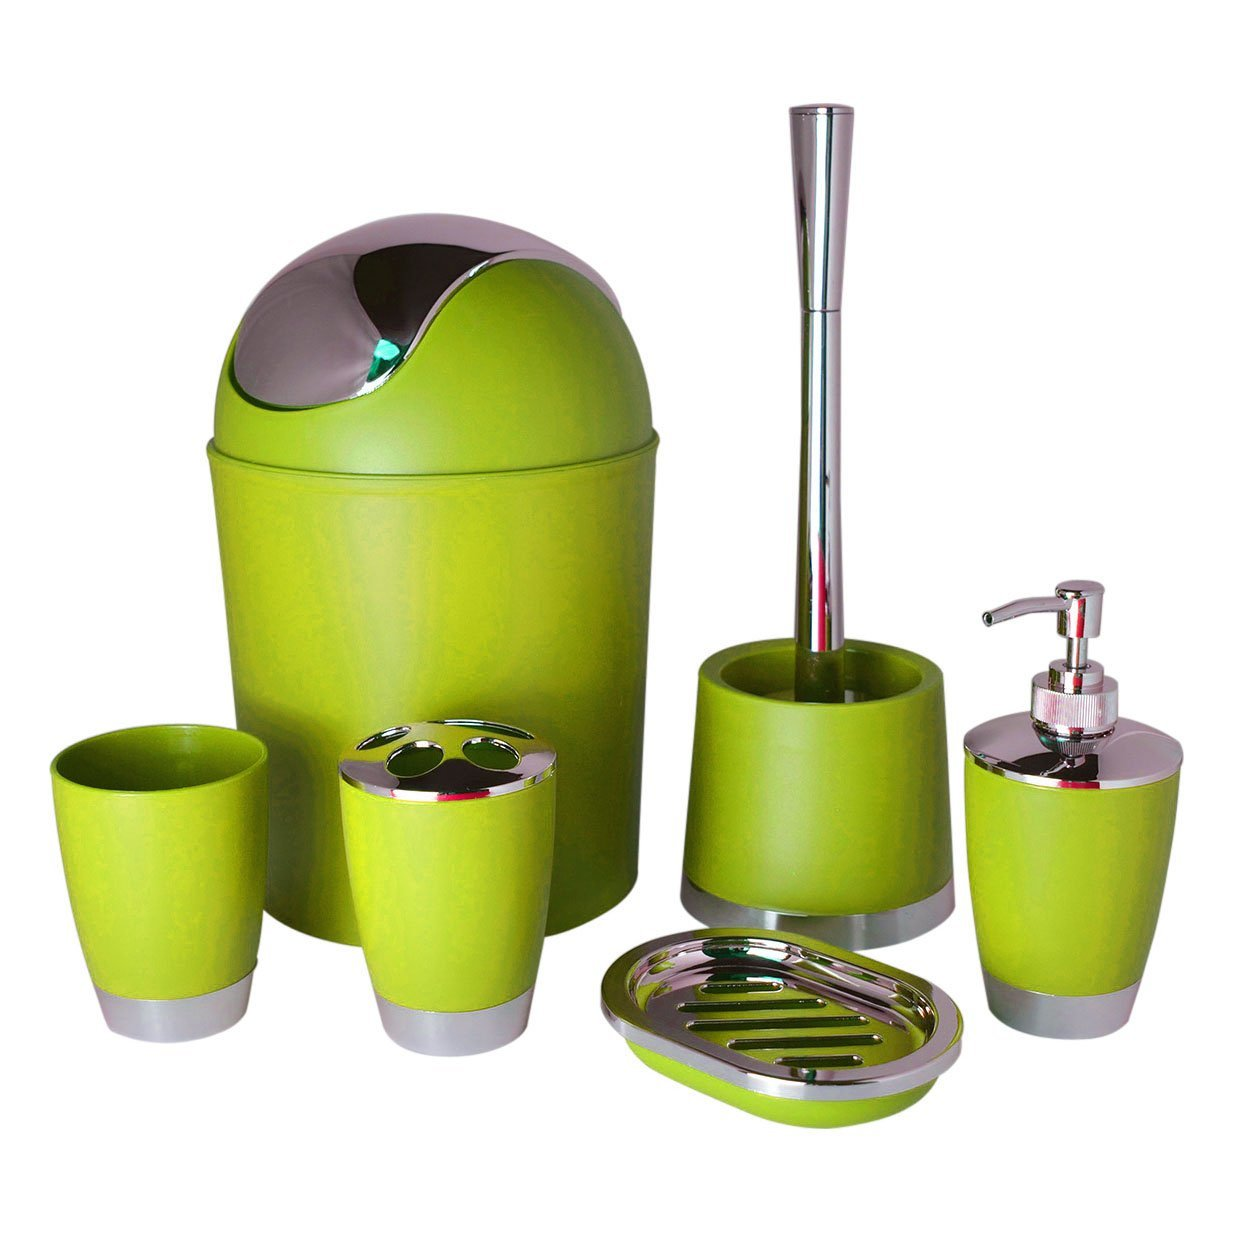 Bathroom Accessories Lahore bathlux modern design 6 piece bathroom accessory set price in